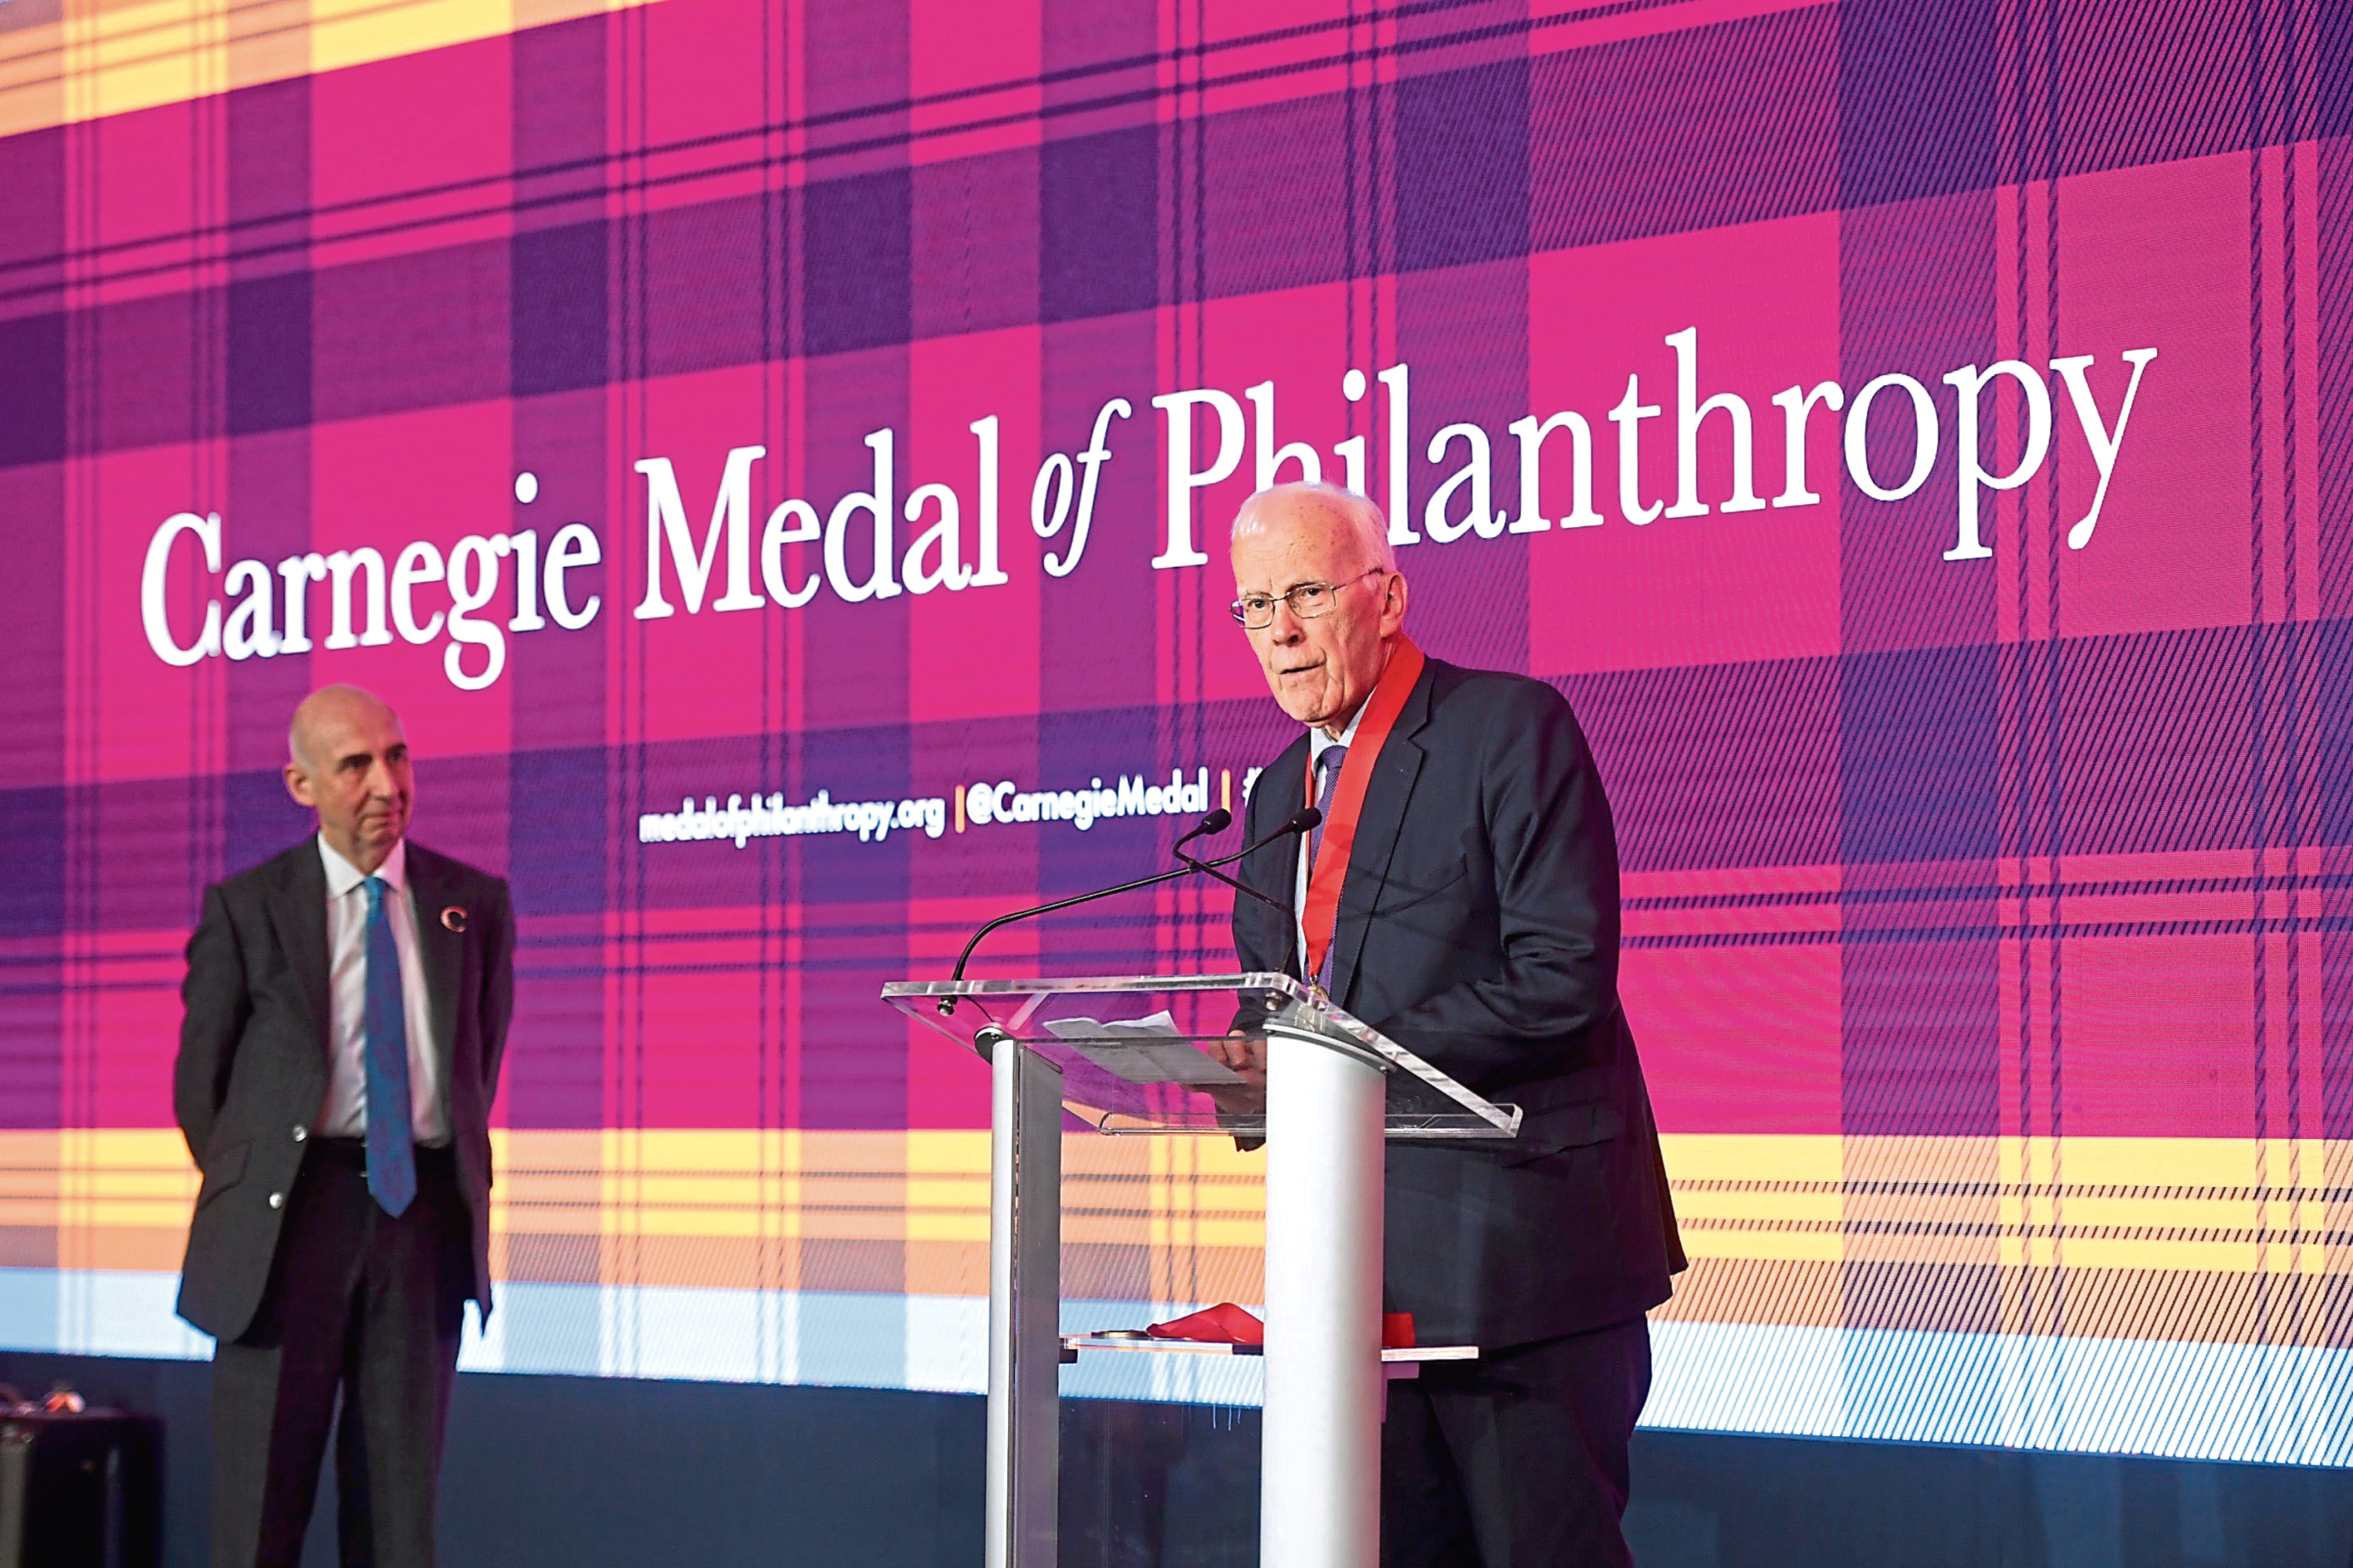 Sir Ian Wood picks up the Carnegie Medal of Philanthropy at a ceremony in New York